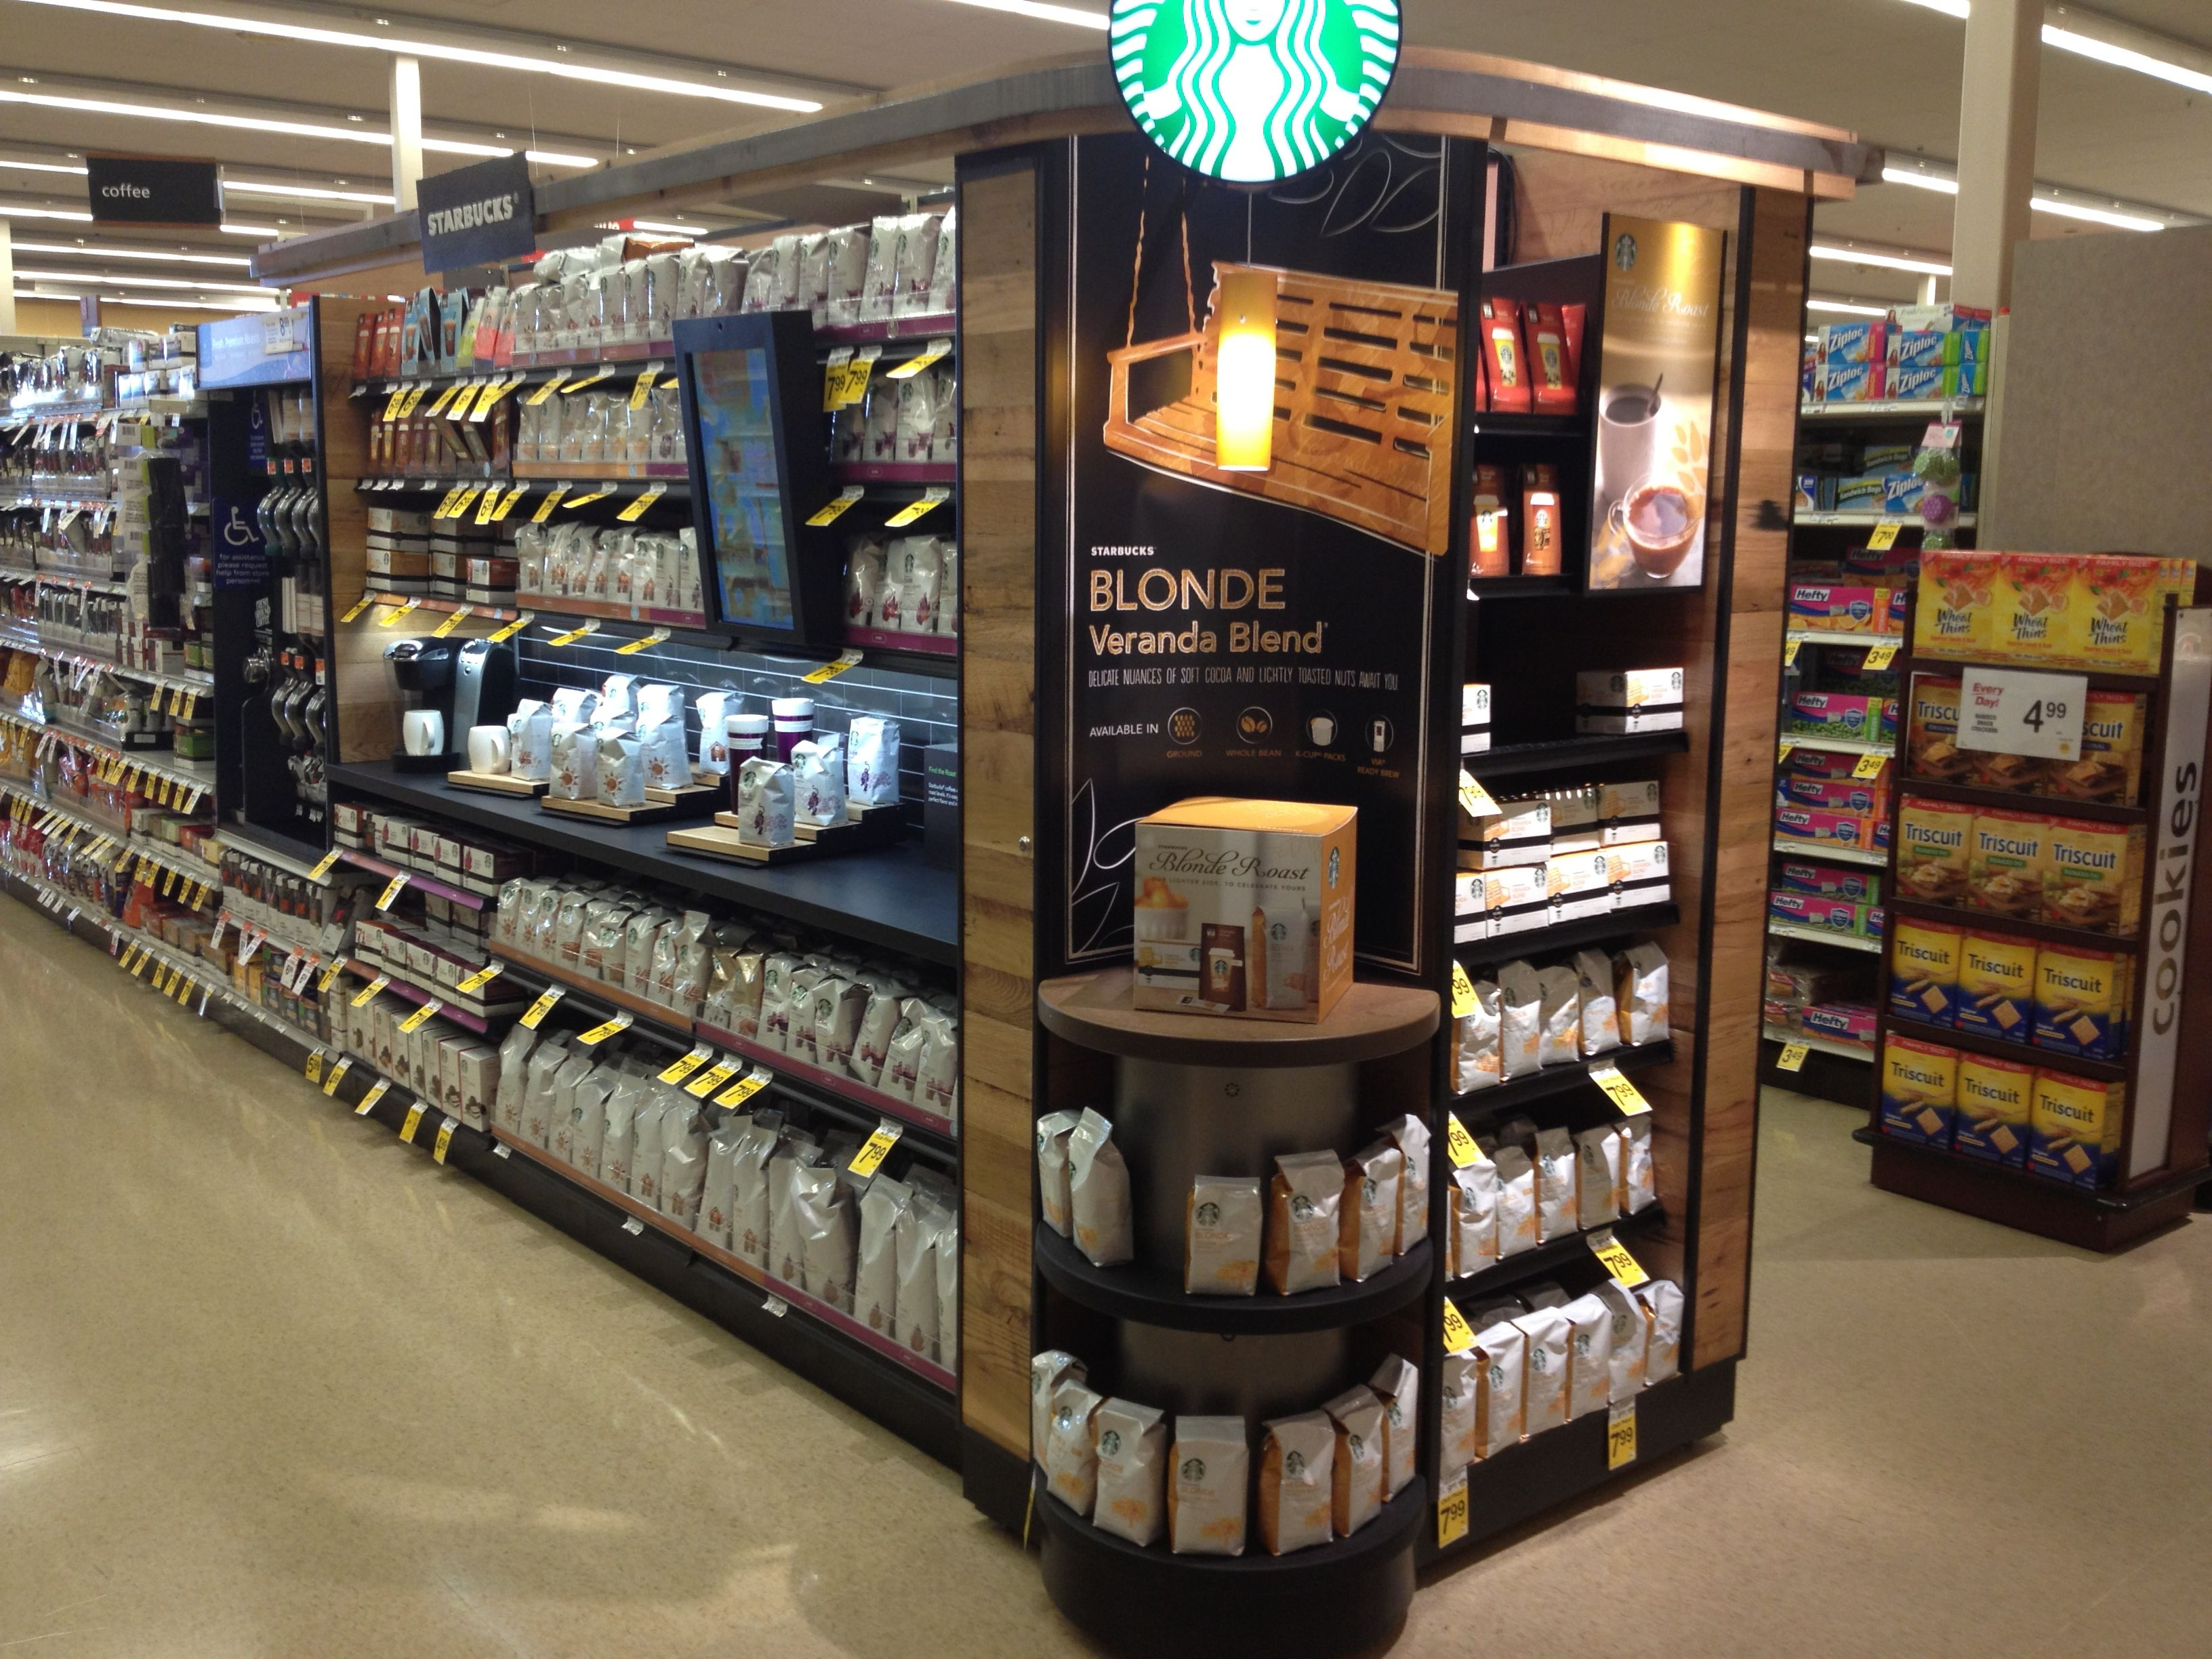 Starbucks In Store Retail Theatre Interactive Touch Screen And Countertop Display Retail Space Design Supermarket Display Retail Design